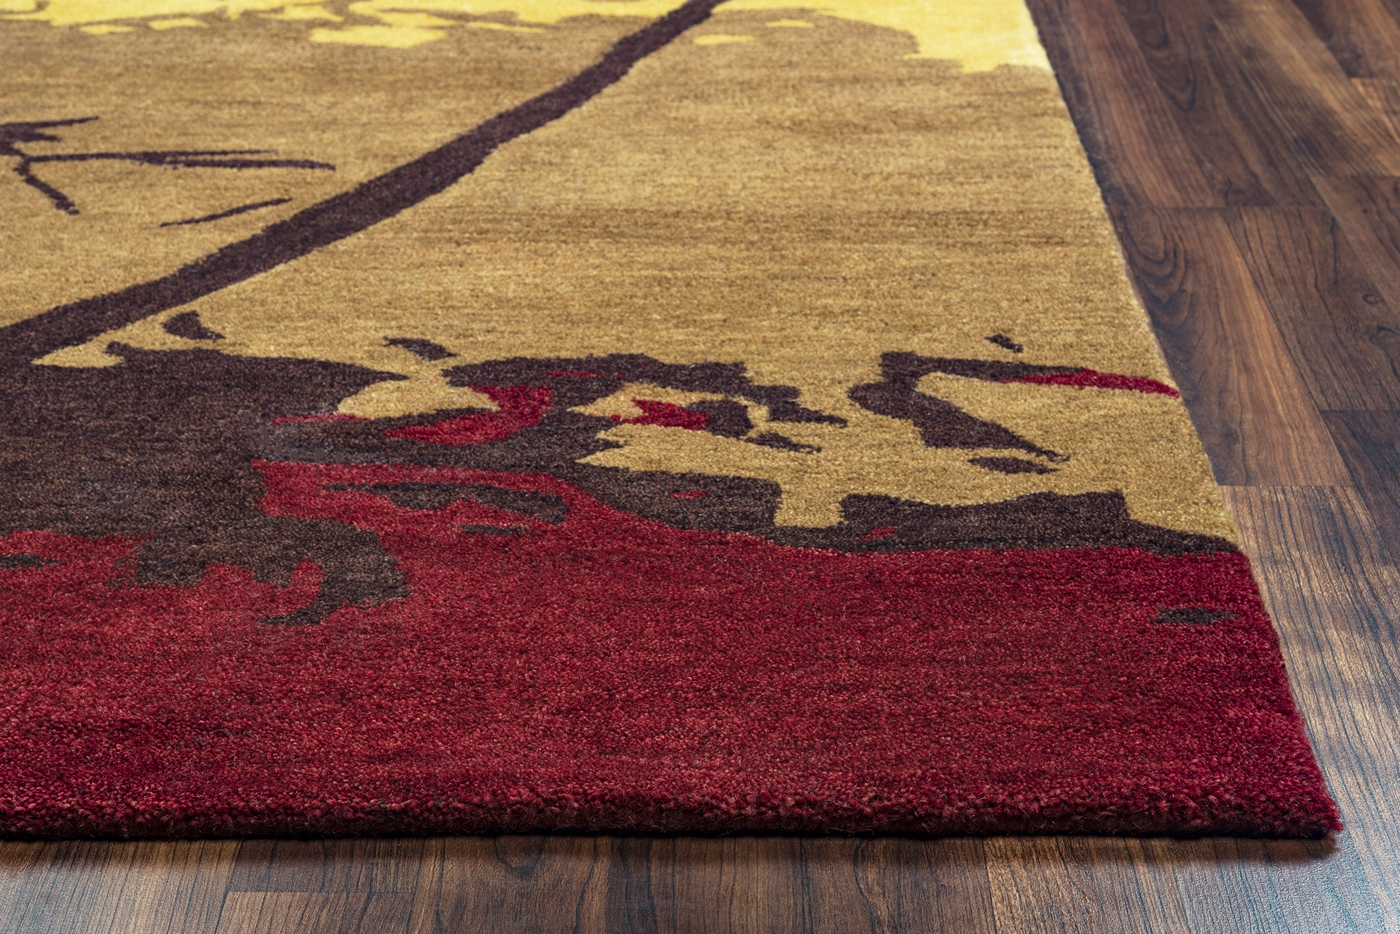 Highland Autumn Season Wool Area Rug In Red Black Tan